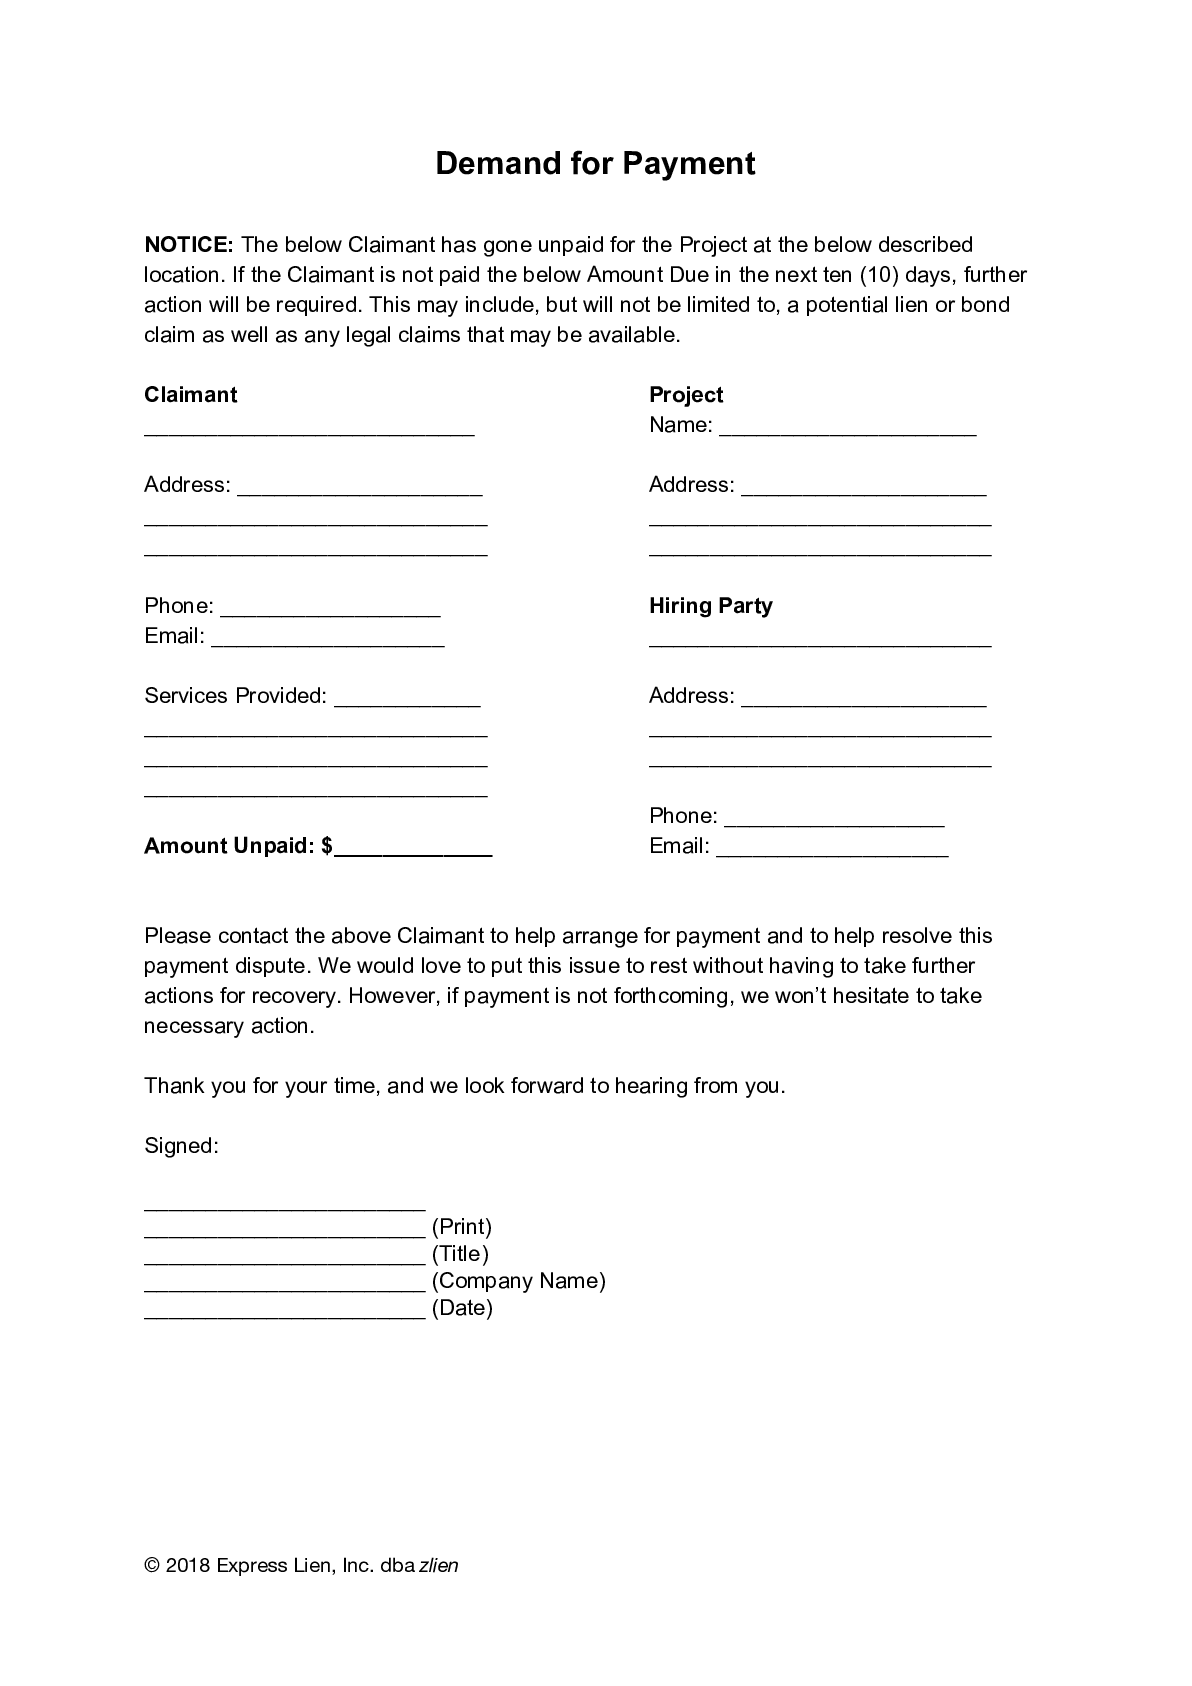 Demand for Payment Form